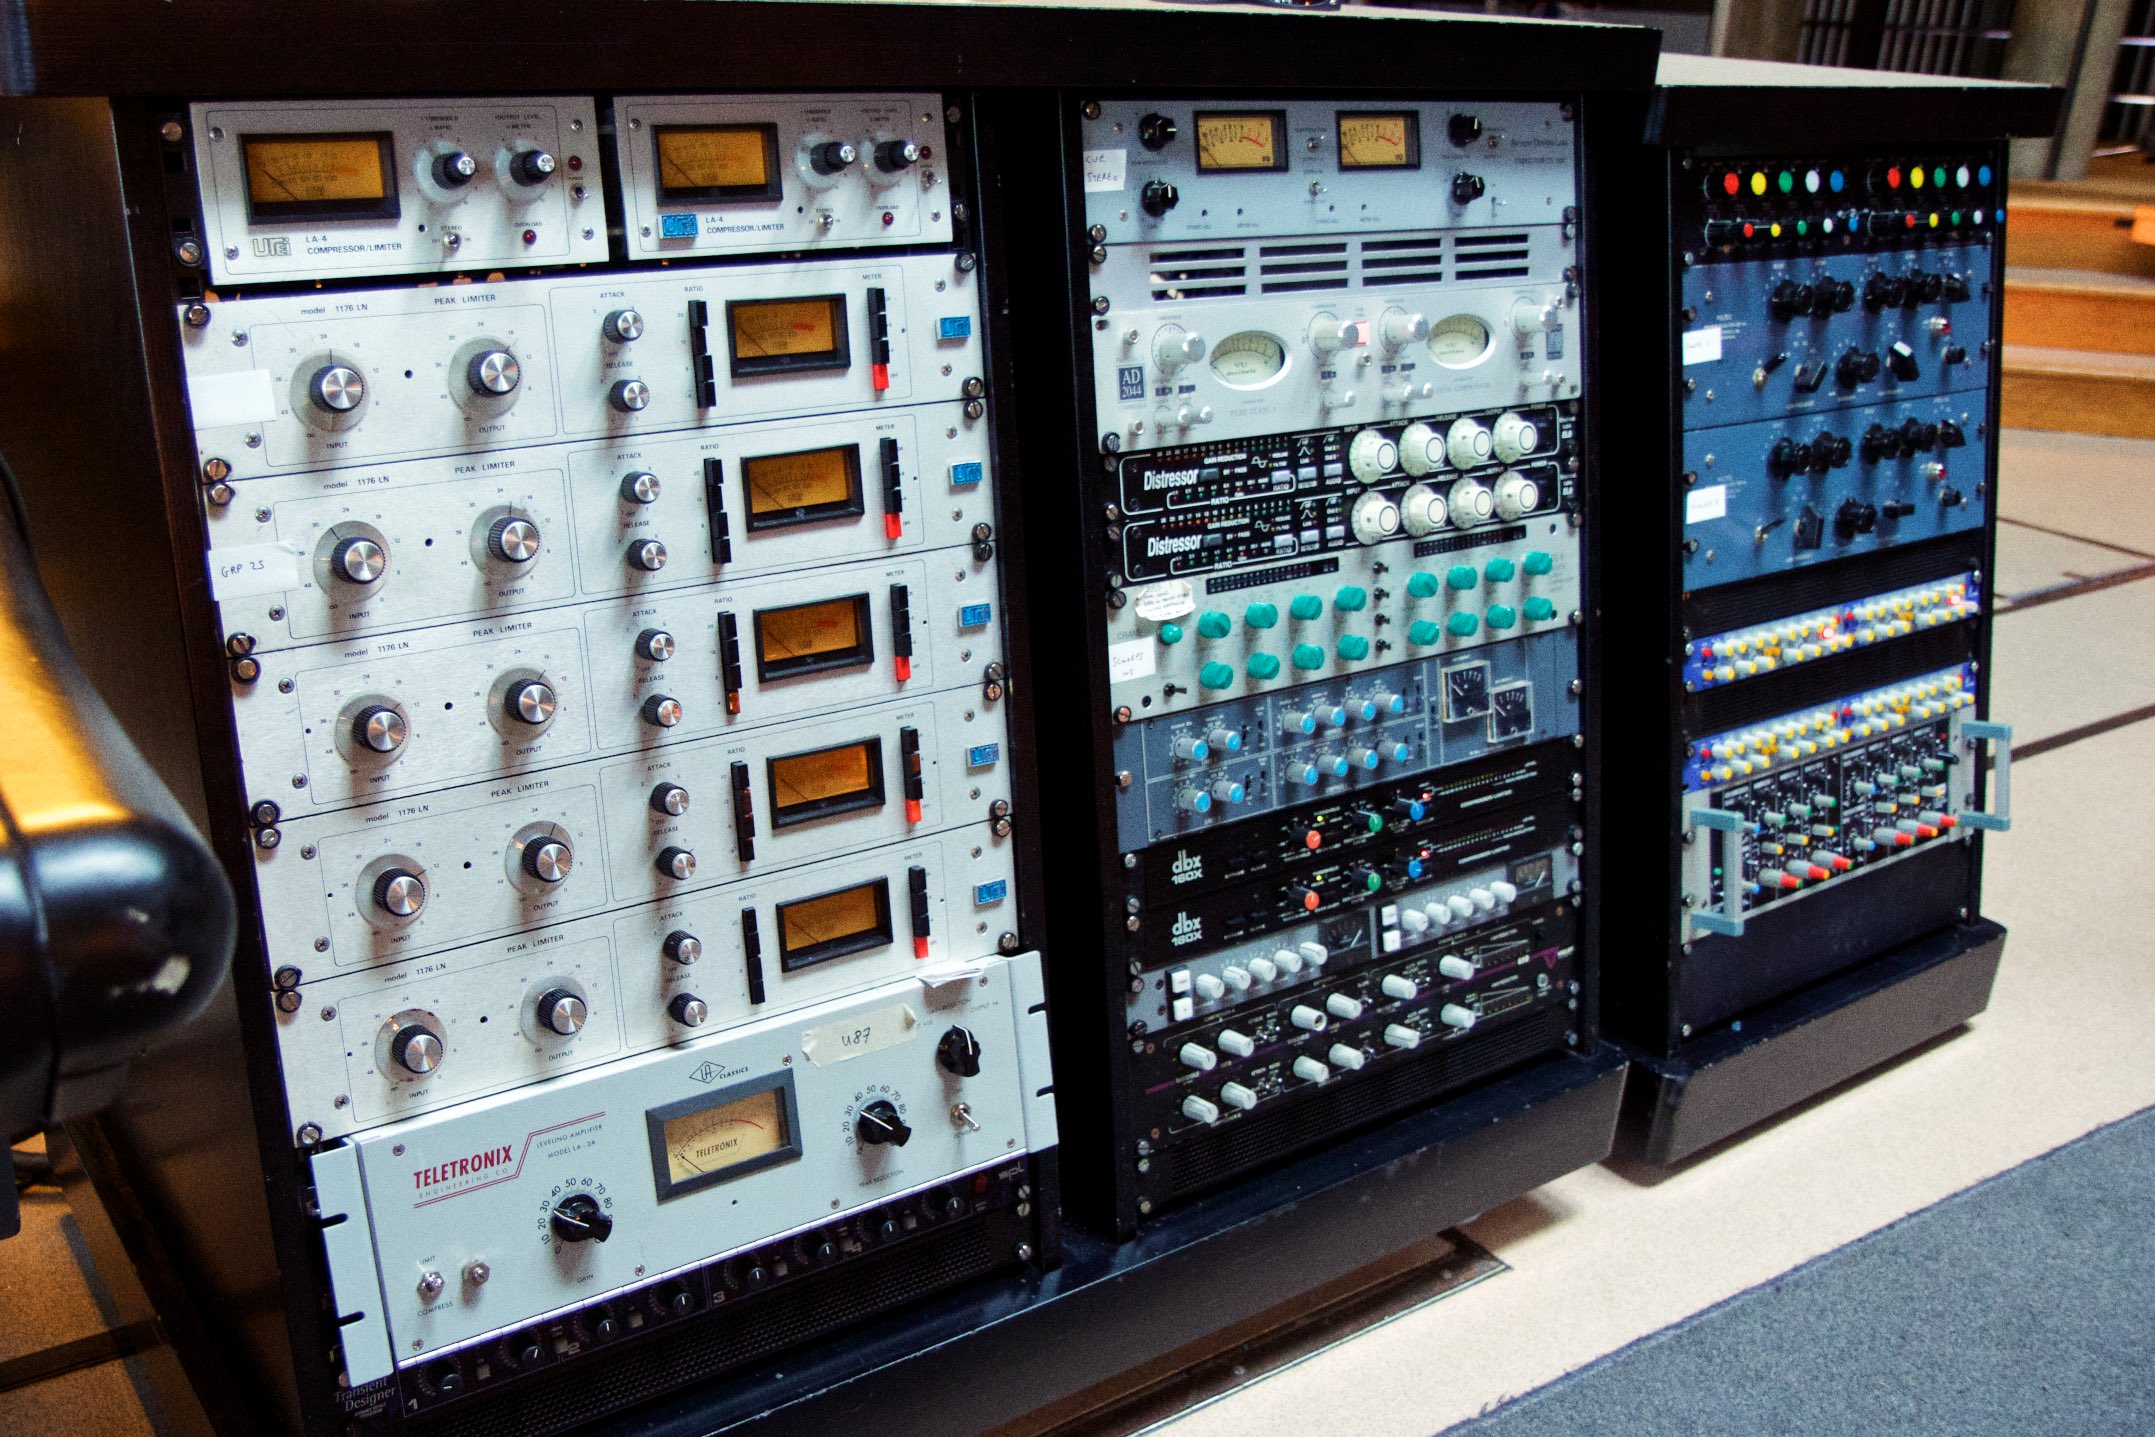 Here is a picture of some compressors that I took at a session at Real World. It's just here to spice things up a bit, you know? Otherwise it's just a lot of text and people don't wanna read stuff these days. We need distractions. Plus, I think it looks better. Spruces the place up, like a nice throw, some cushions, or a nice lamp.